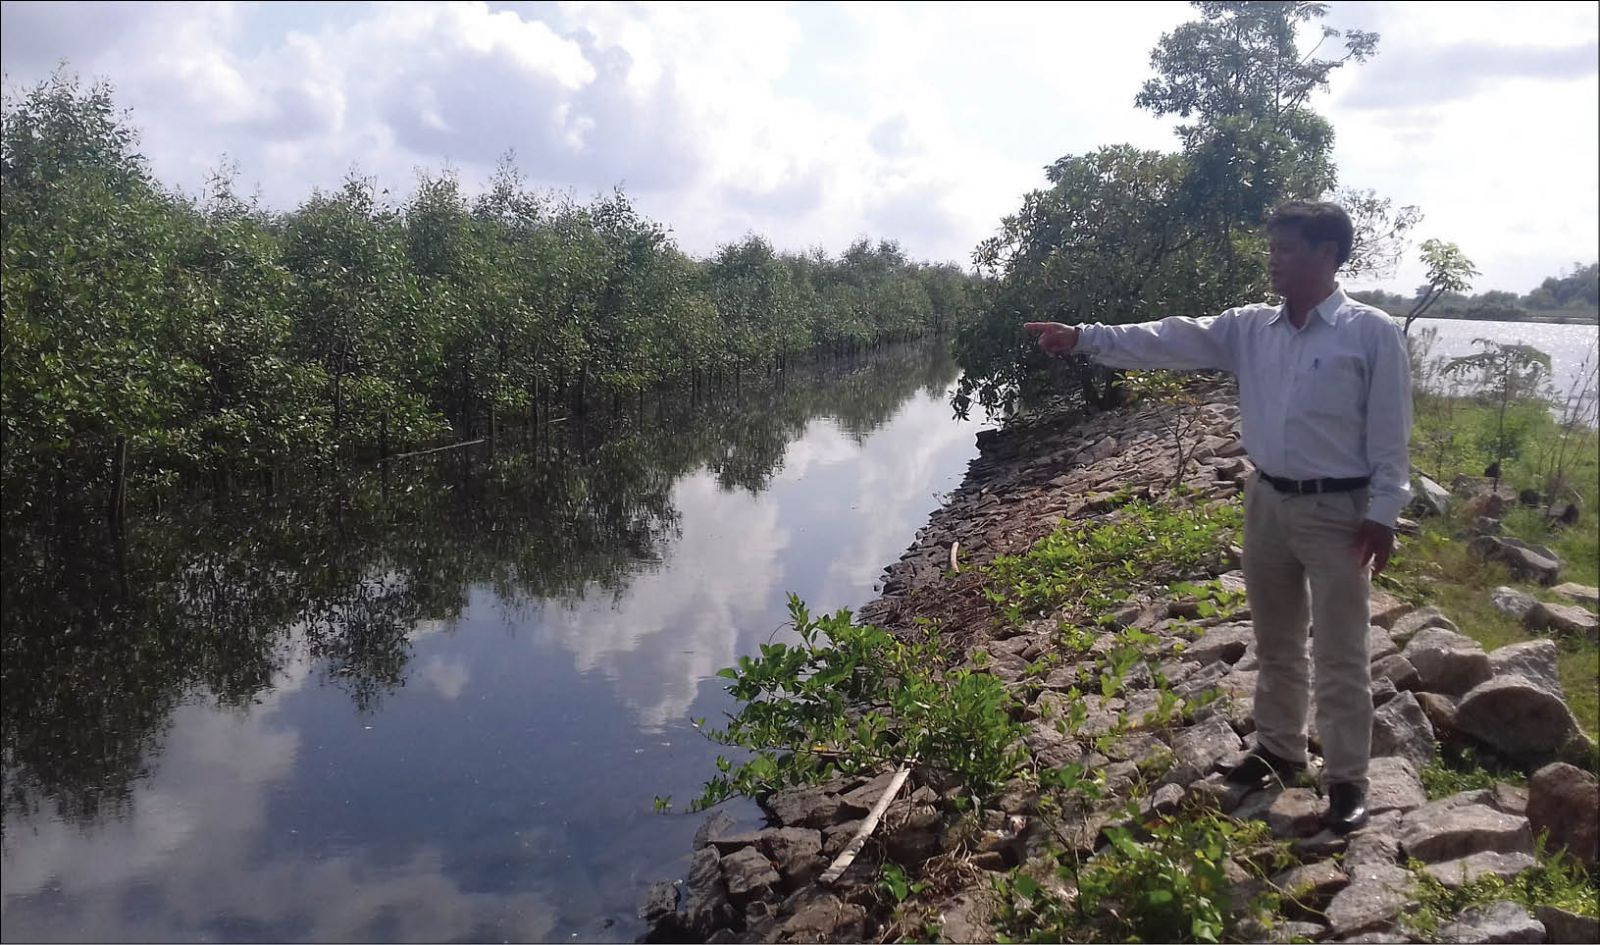 Ecotourism from Quang Loi mangrove forest